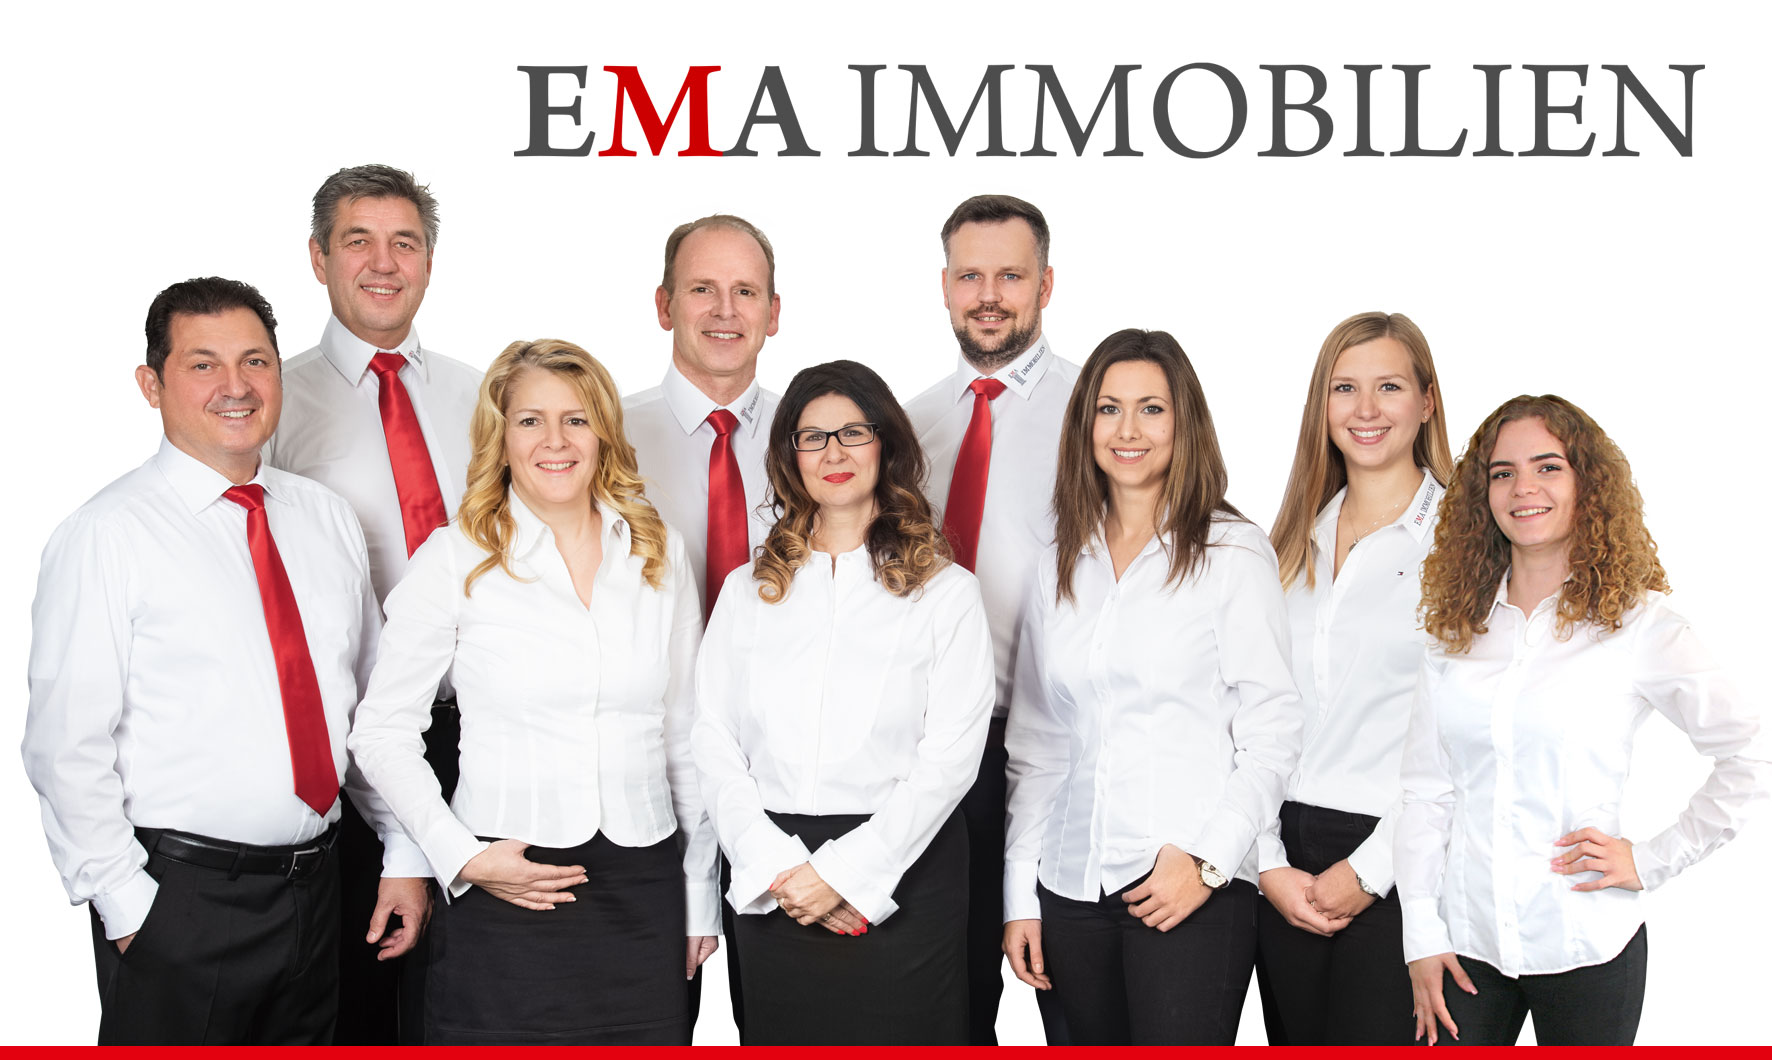 Our team - EMA Immobilien